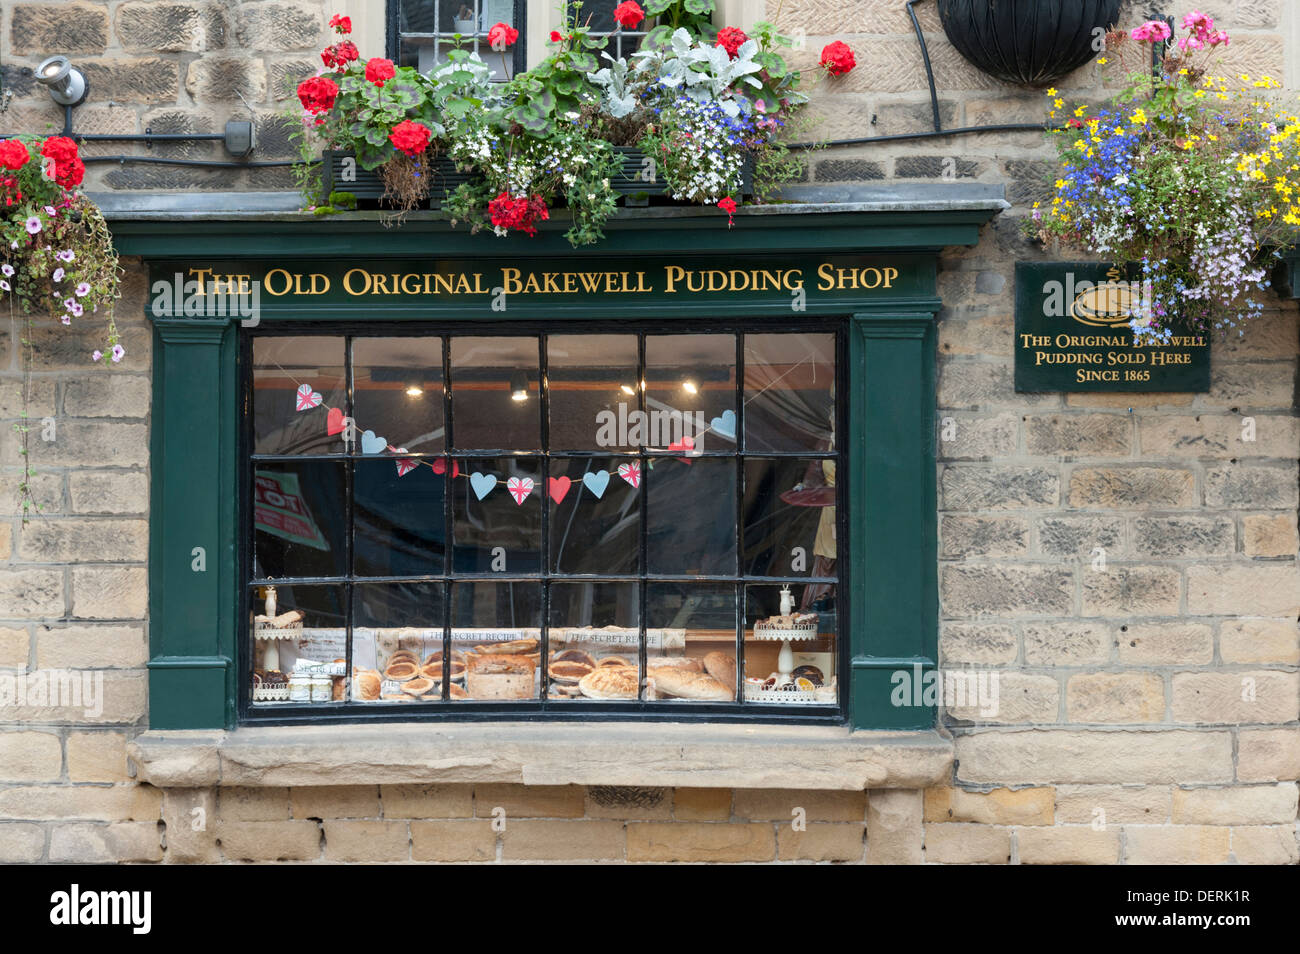 The window of the Old Original Bakewell Pudding Shop Bakewell Peak District Derbyshire UK - Stock Image